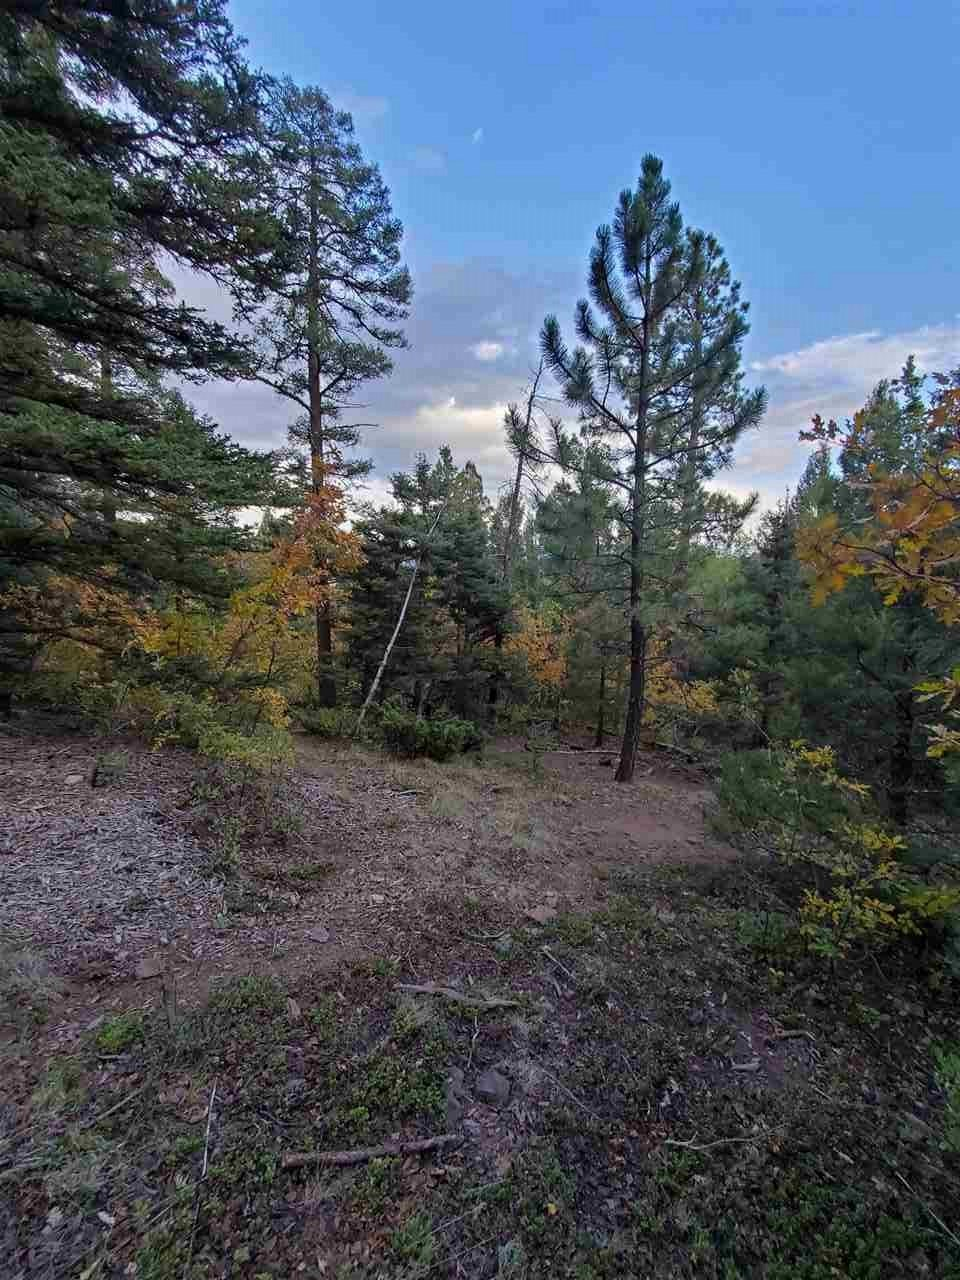 Beautiful acreage in Taos Pines subdivision.   Easy year round access to a lot that could potentially have some fantastic views with thinning.  Priced right to move quick.  Beautiful home site on this gently sloped lot.  Pine and Aspen abound.  Tons of wildlife to enjoy.